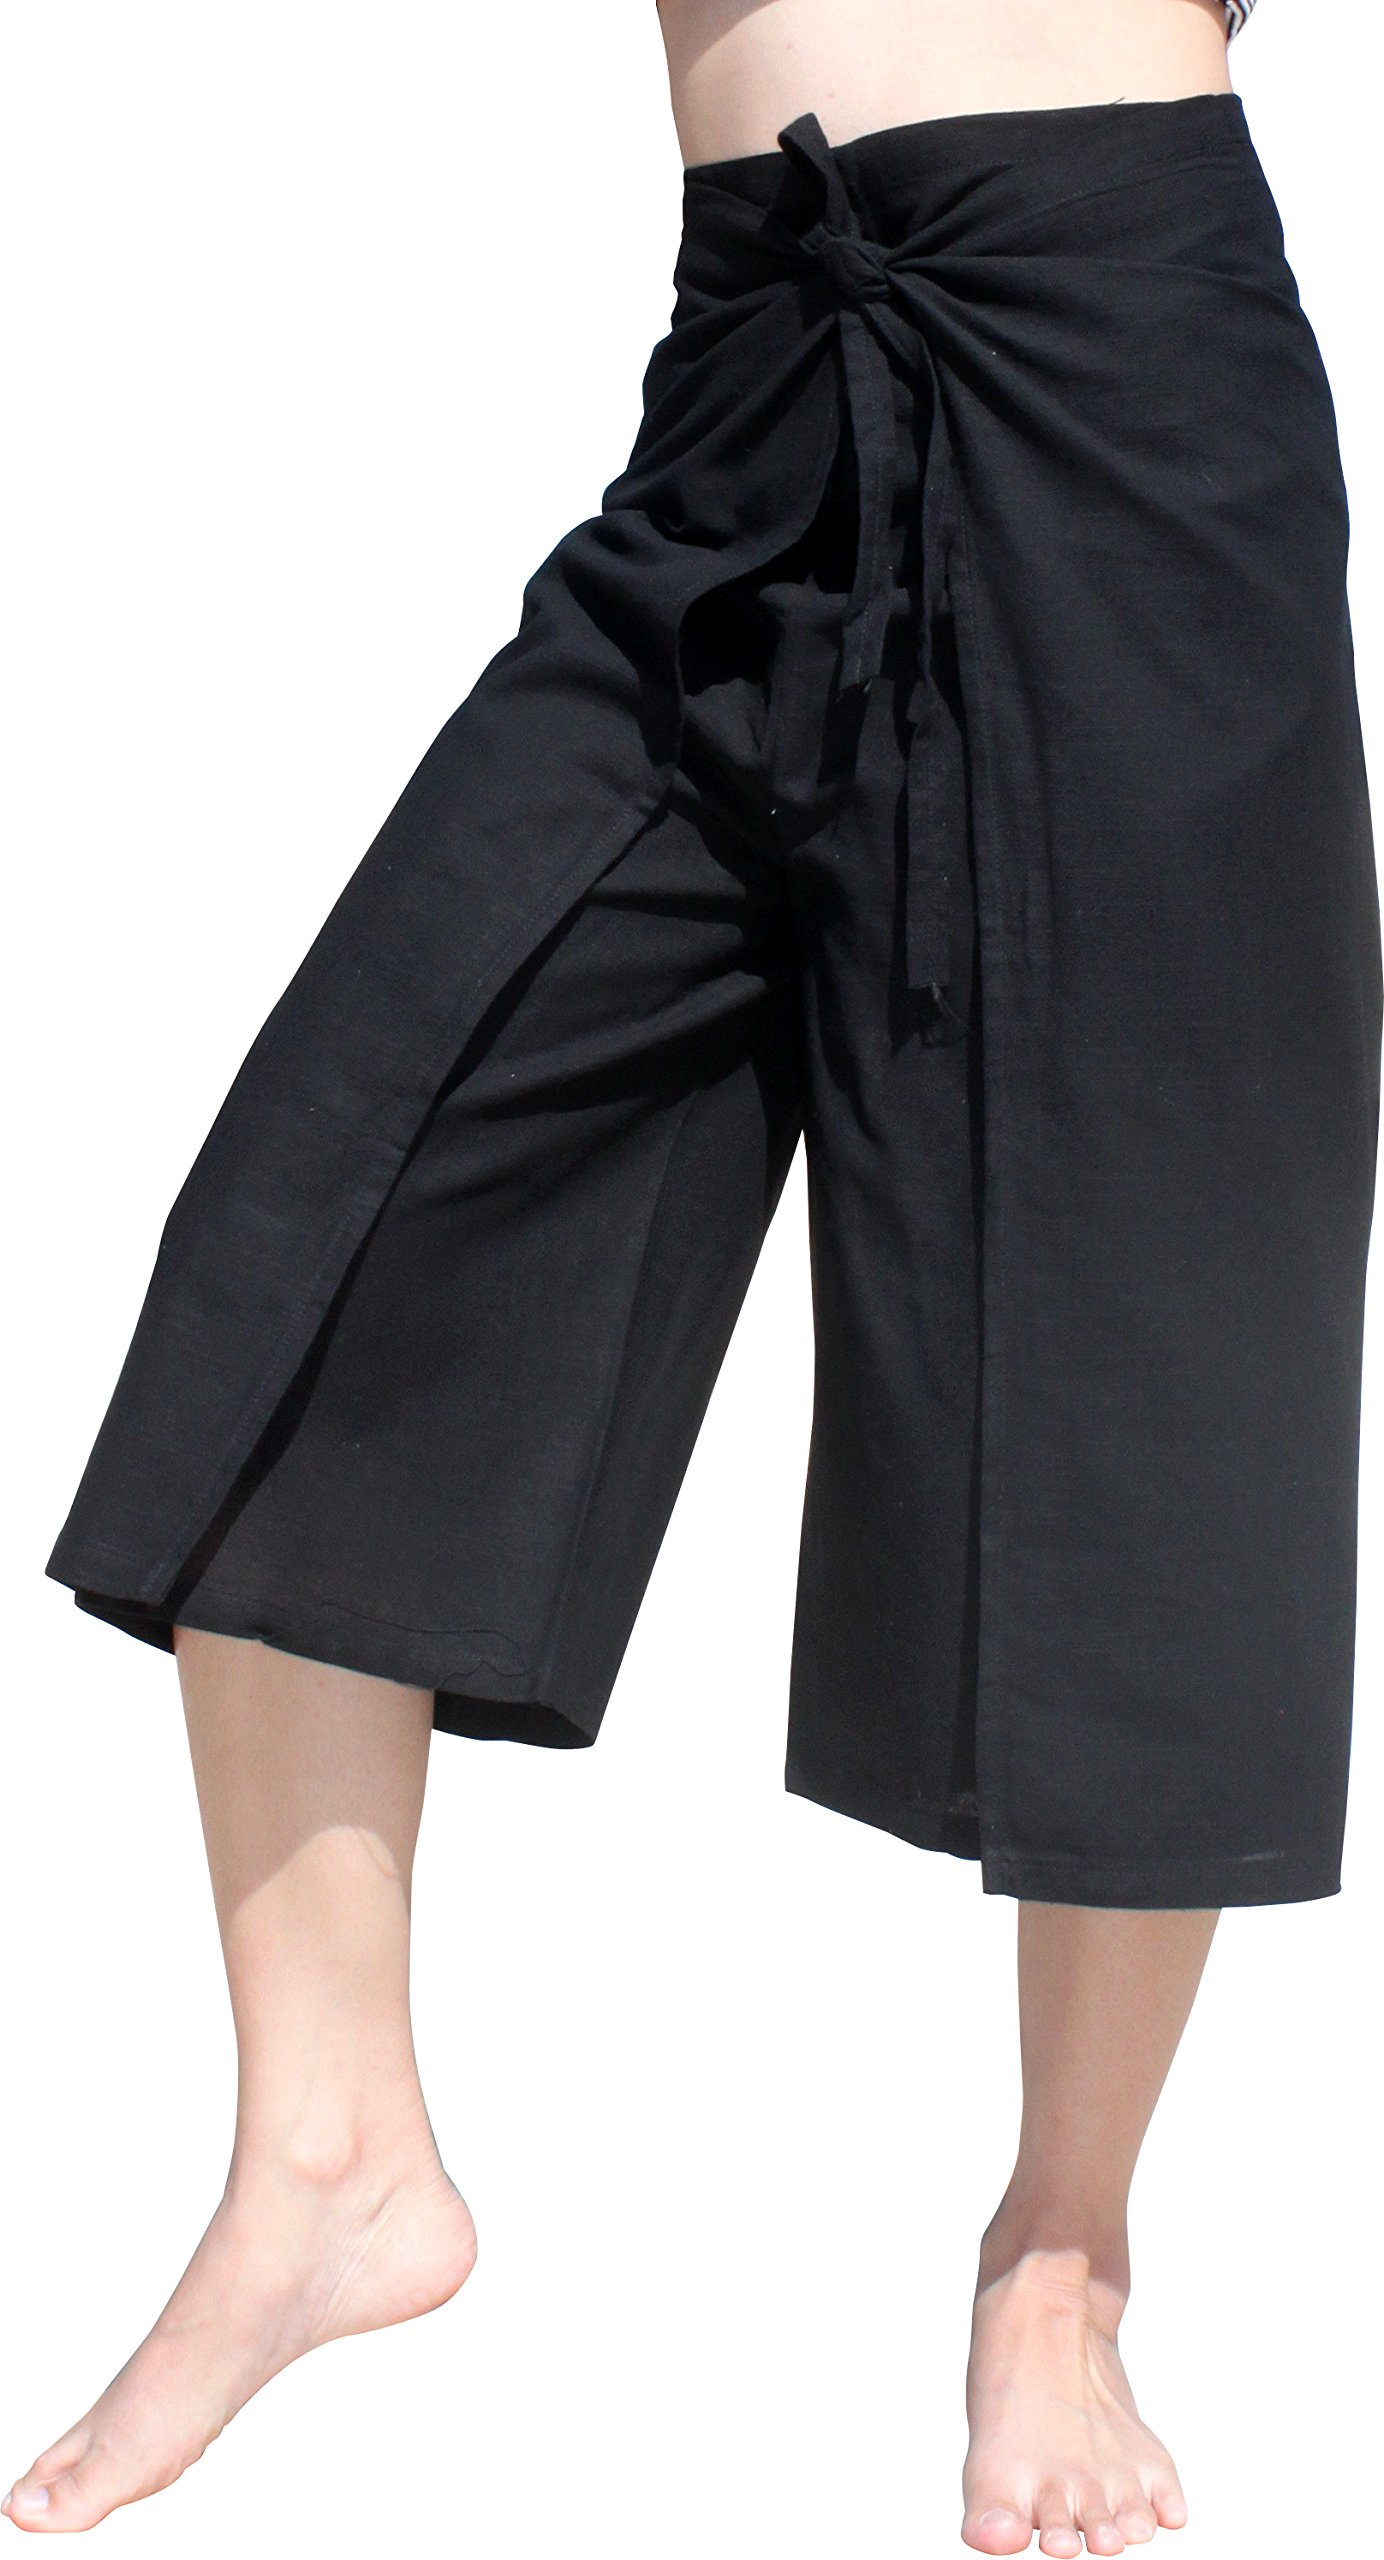 RaanPahMuang Drive In Wrap Pants In Summer Plain Mixed Cotton, Medium, Muang Cotton - Black by RaanPahMuang